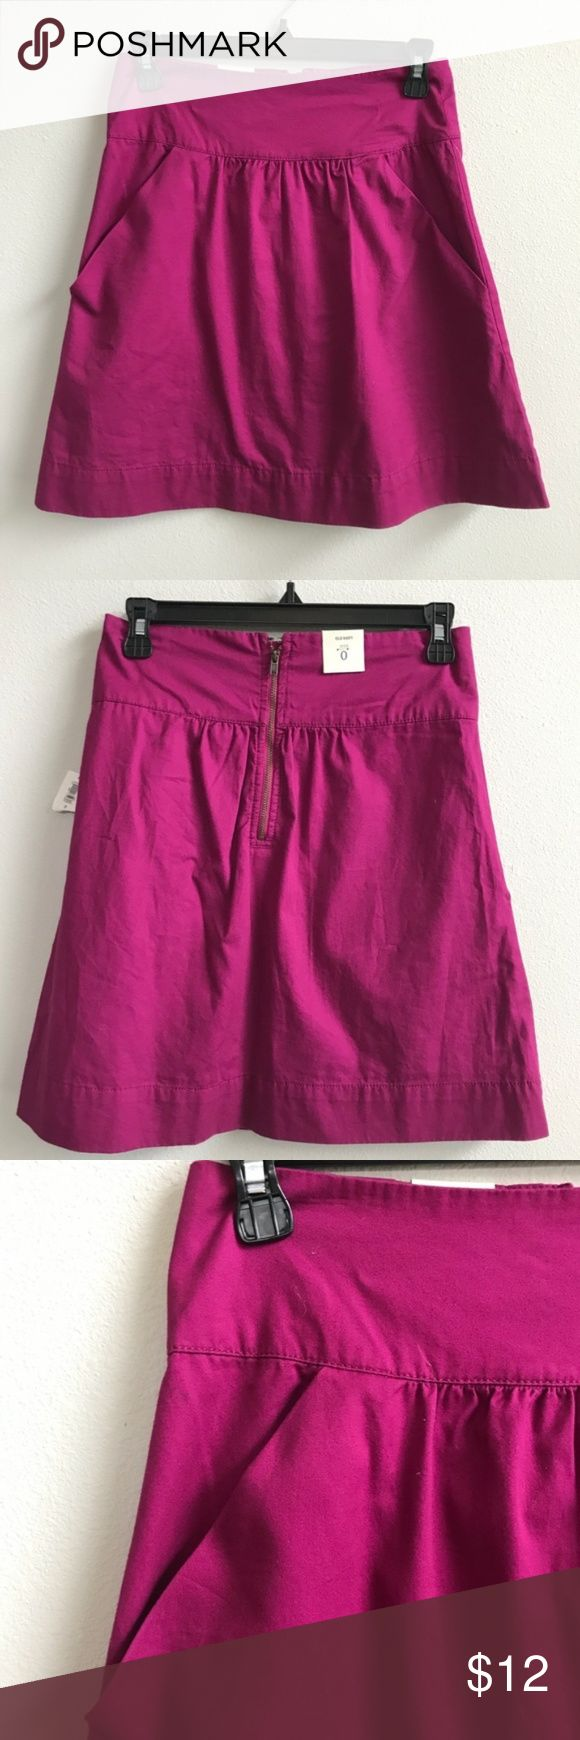 """Old Navy : NWT fuchsia skirt New with tags cotton skirt from Old Navy. Back zip, front pockets. 100% Cotton. Size 0. Approx 18"""" long, 13"""" across the waist No holds or trades. Bundle to save. Open to offers. B1 Old Navy Skirts"""